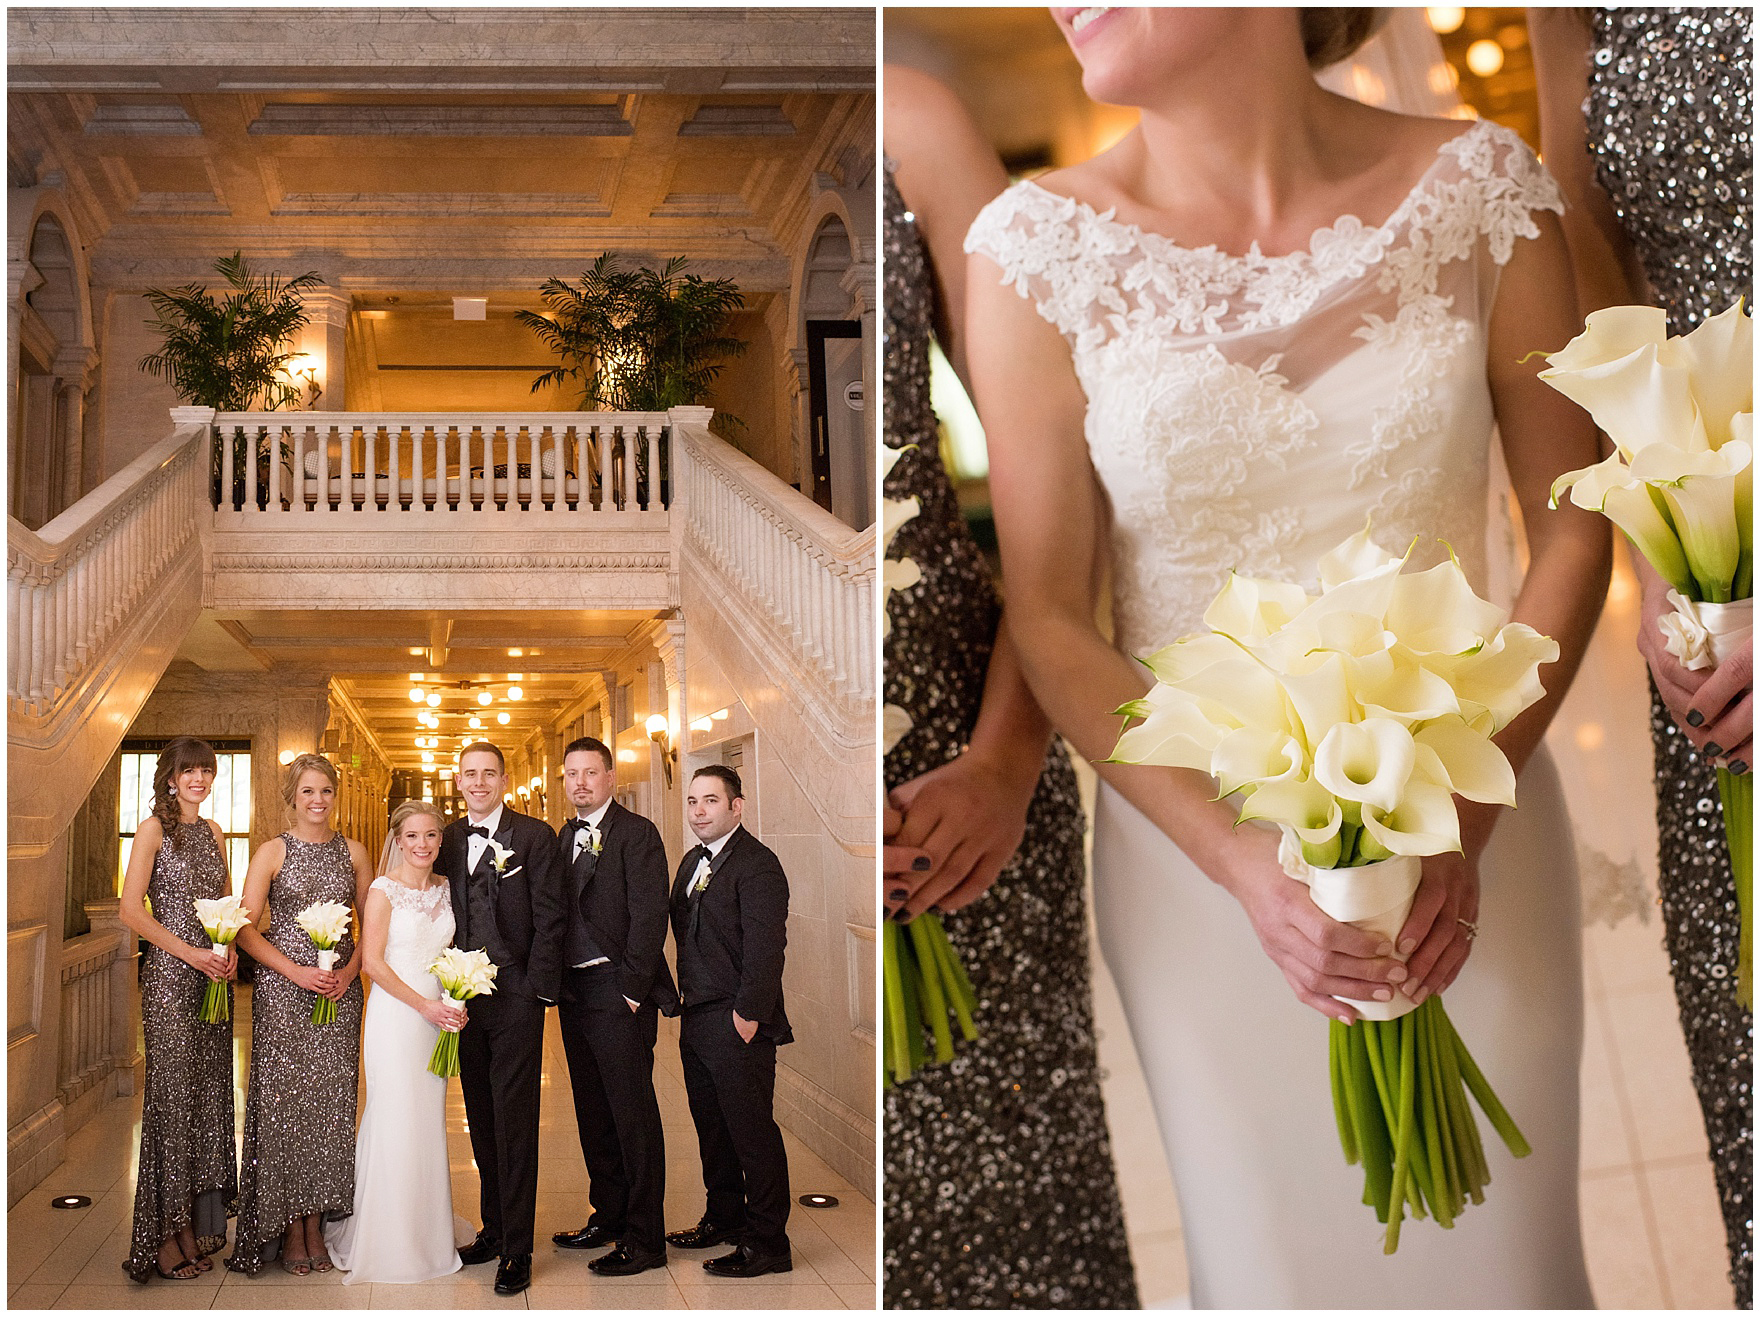 The bridal party poses for photos at the Gray Hotel Chicago before a Newberry Library Chicago wedding.